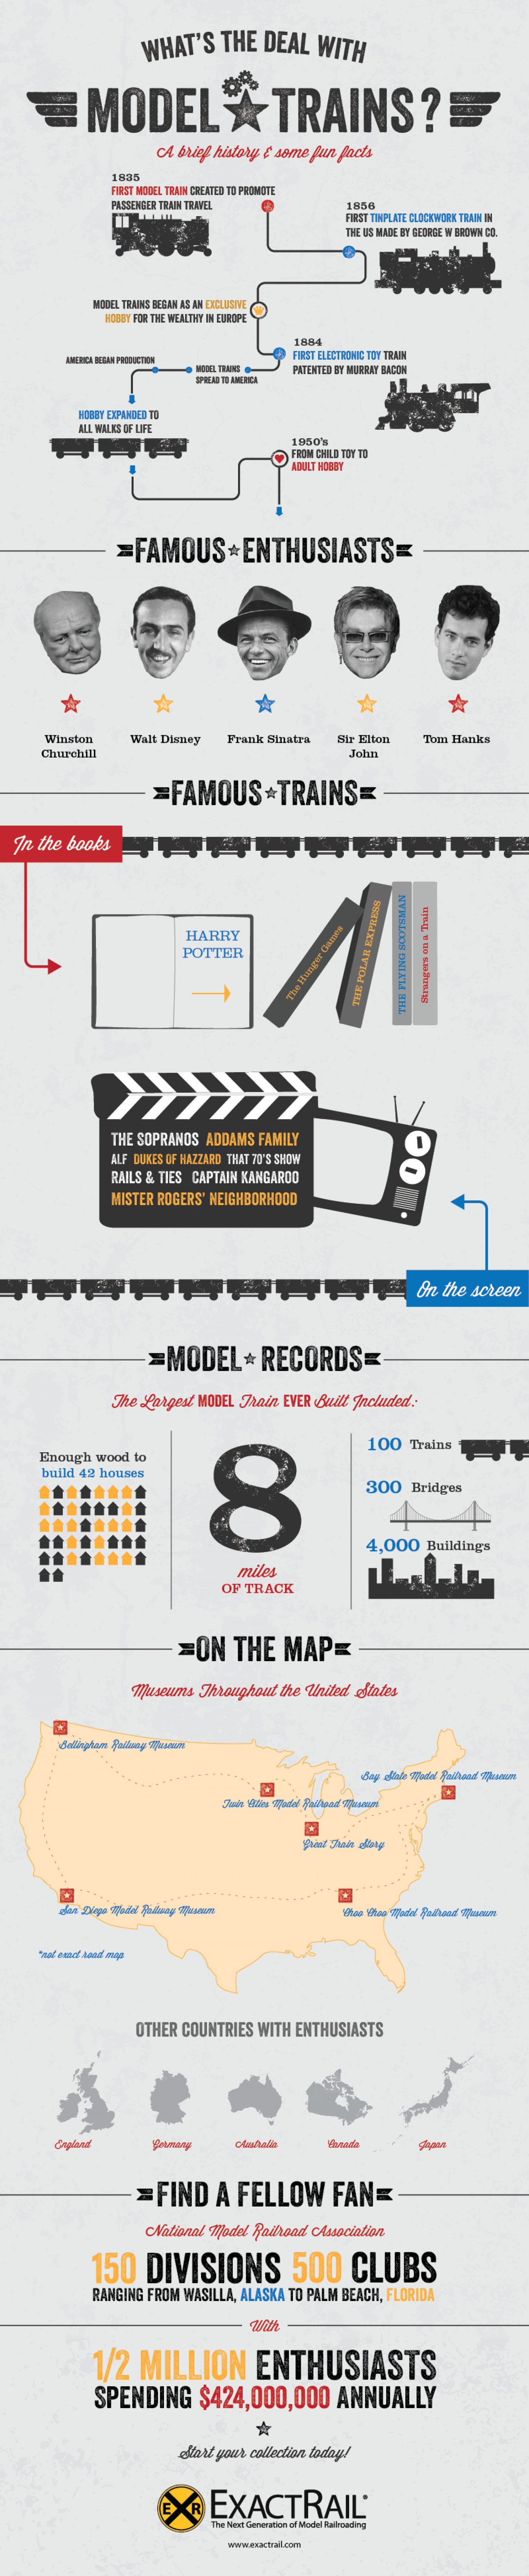 What's the Deal With Model Trains Infographic